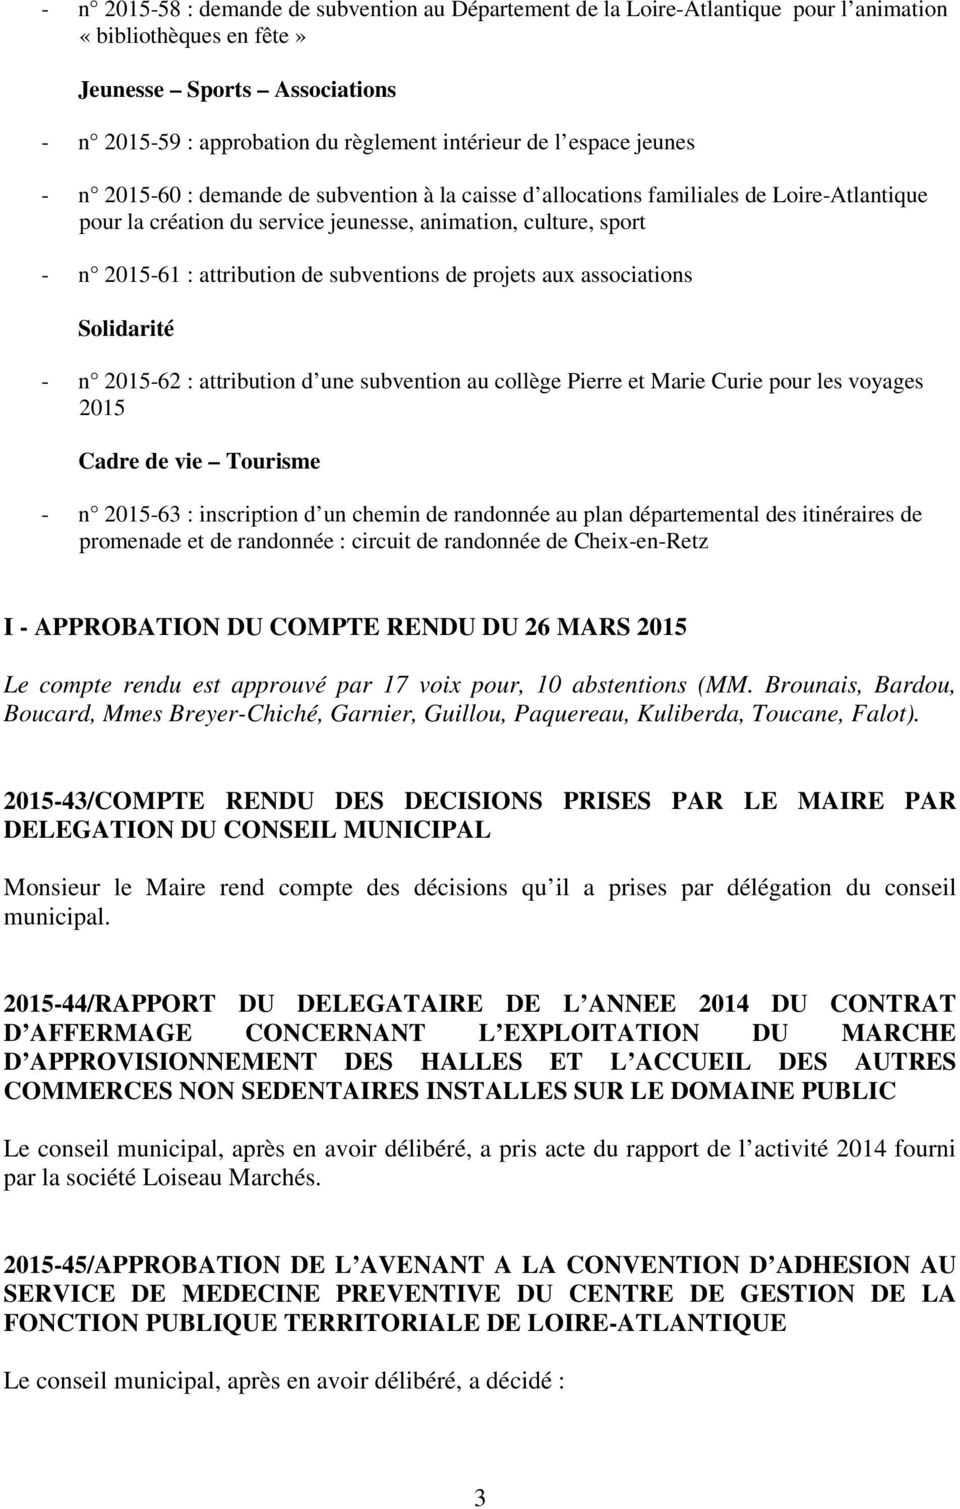 subventions de projets aux associations Solidarité - n 2015-62 : attribution d une subvention au collège Pierre et Marie Curie pour les voyages 2015 Cadre de vie Tourisme - n 2015-63 : inscription d